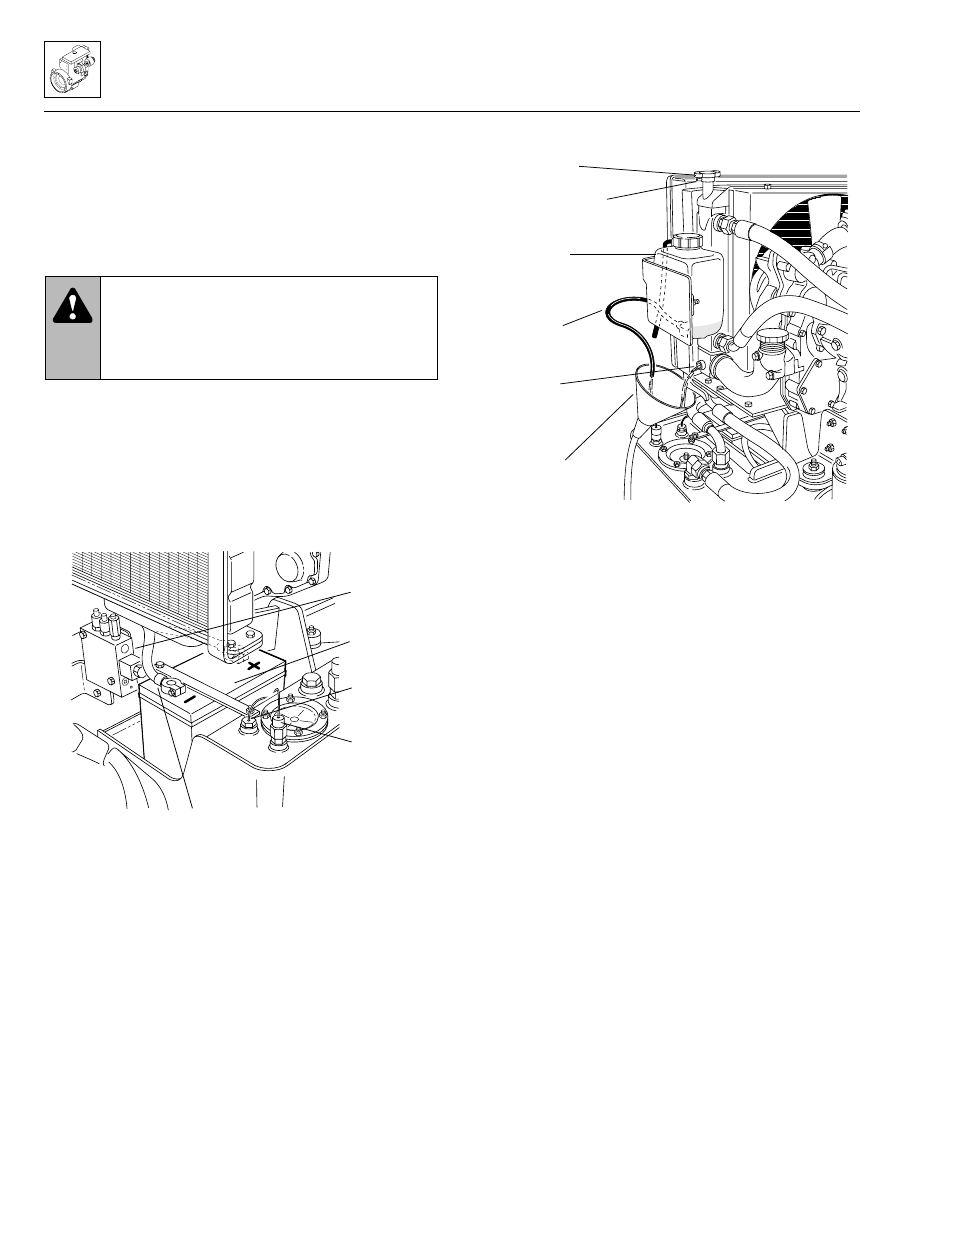 8a 9 perkins engine replacement a-16, 8a 9 1, Engine removal a-16